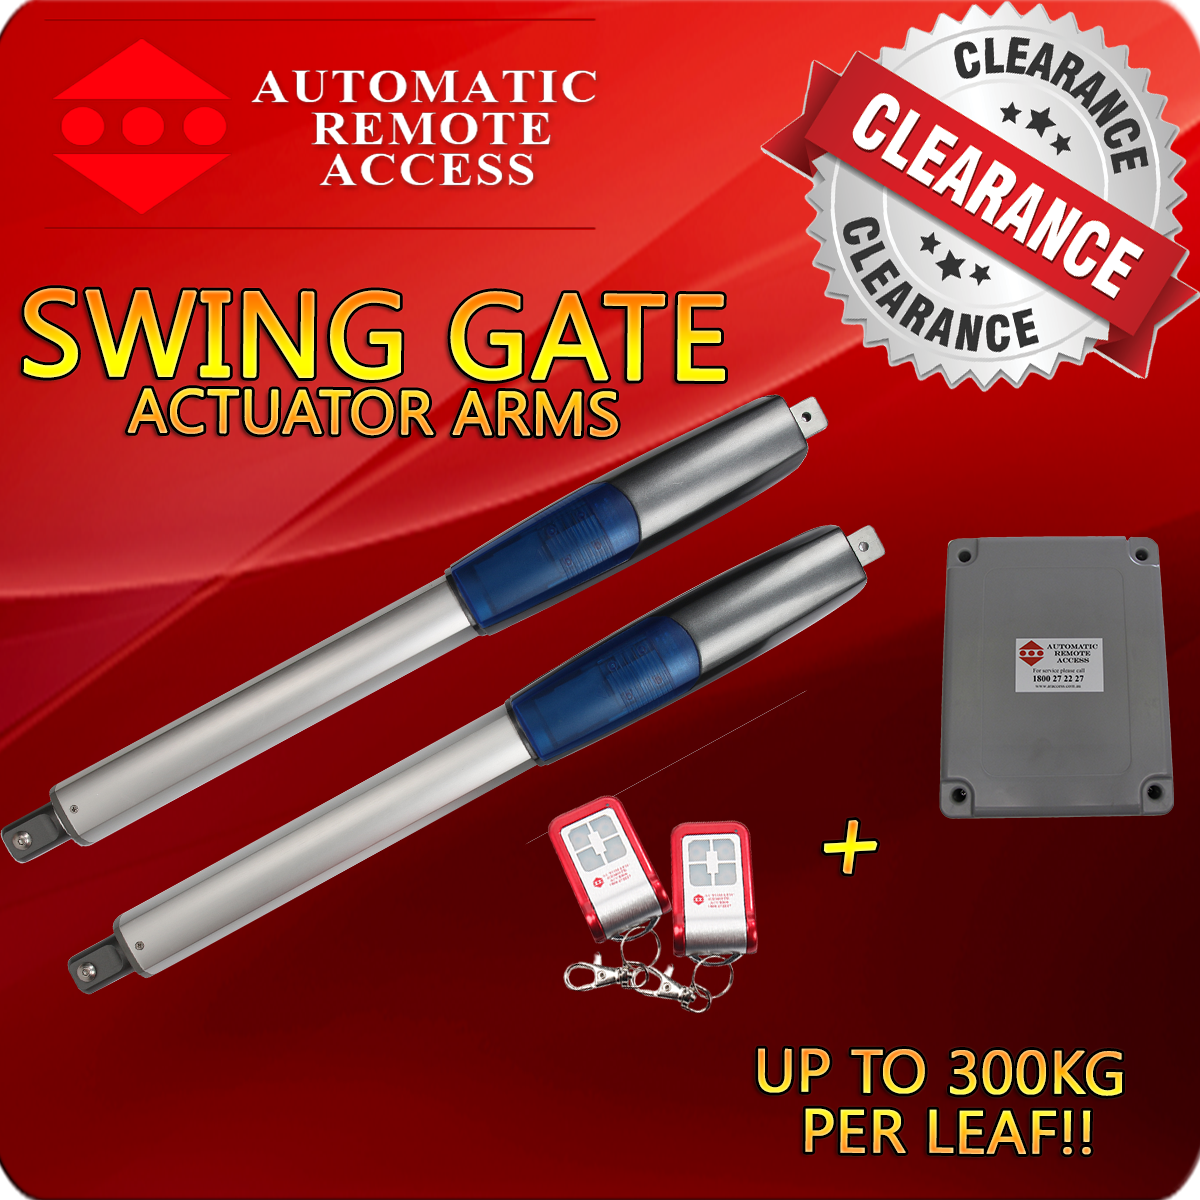 Actuator Driven Swing Gate Opener 2 X Remotes And 1 X